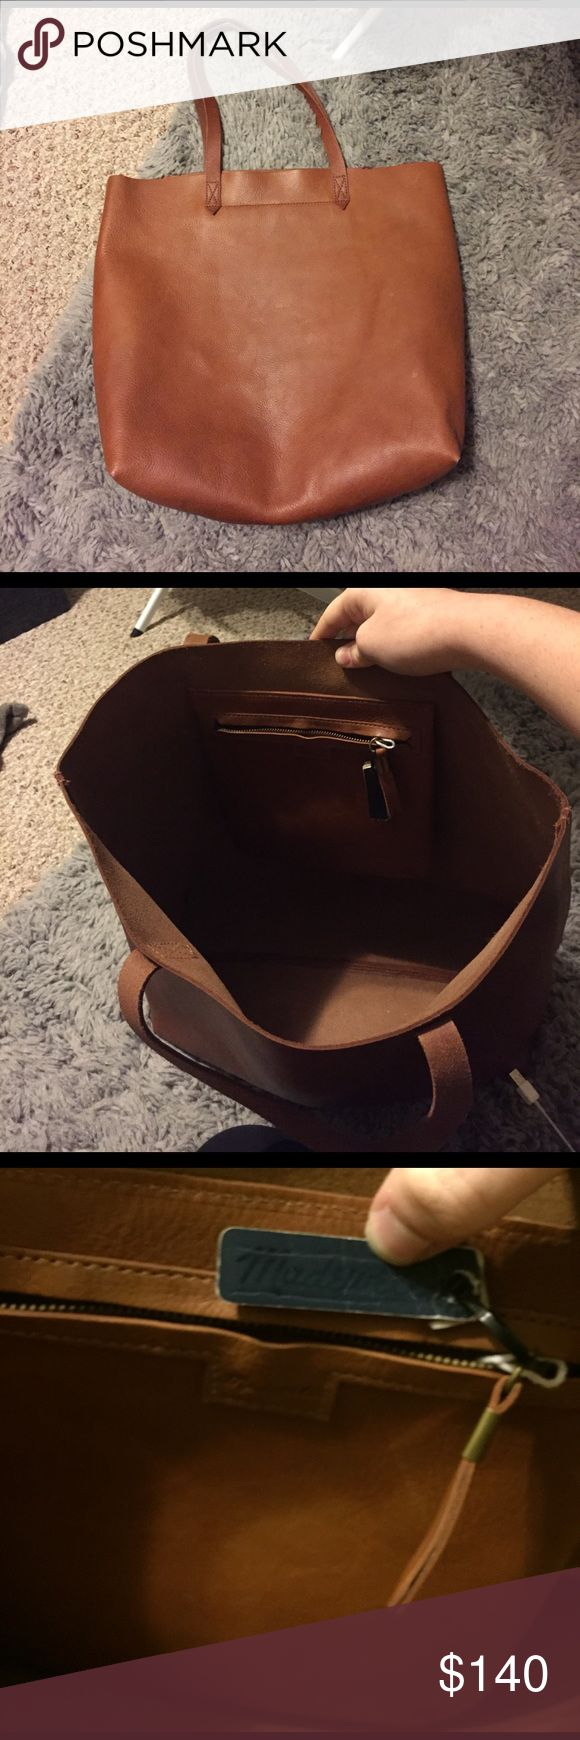 Madewell transport tote Only used for 2 weeks still have tag on it. Very new like new condition! Amazing bag, just didn't have much of a use for it! Madewell Bags Totes